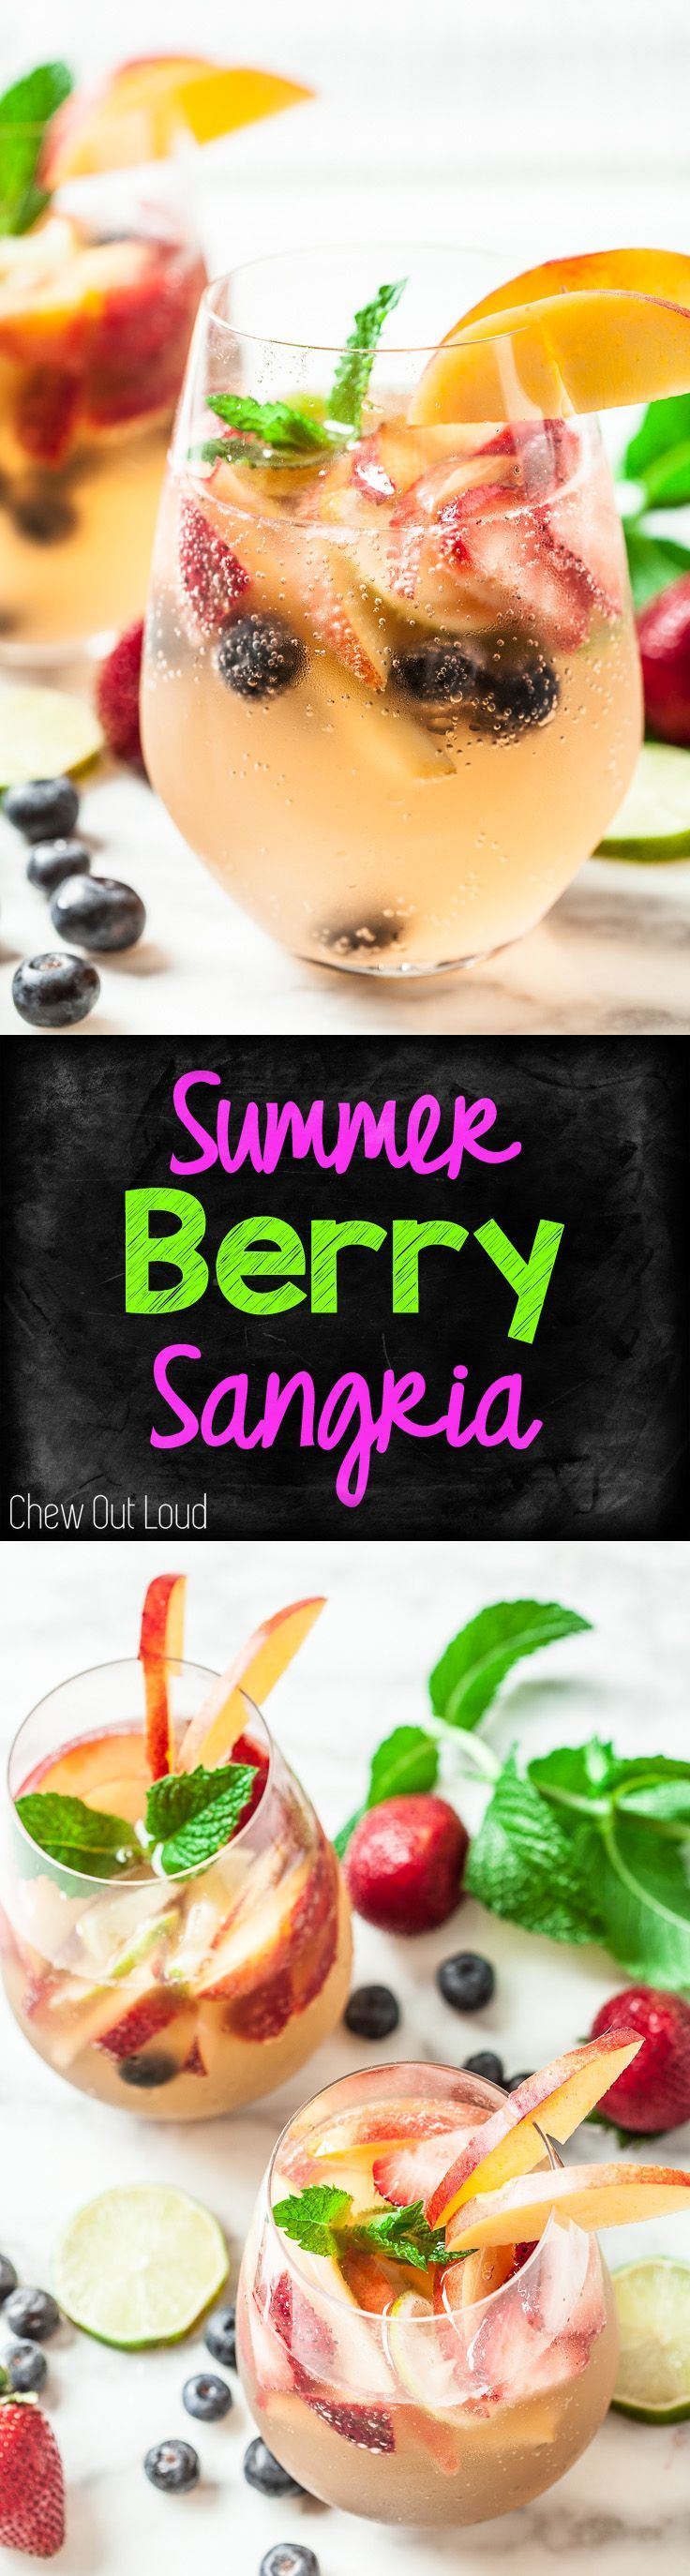 This Summer Berry Sangria is sparkly, berry-full, and refreshing! Needs way less chill time than most sangrias. Quick 'n Easy! #sangria #summer #drink #berry #wine  www.chewoutloud.com